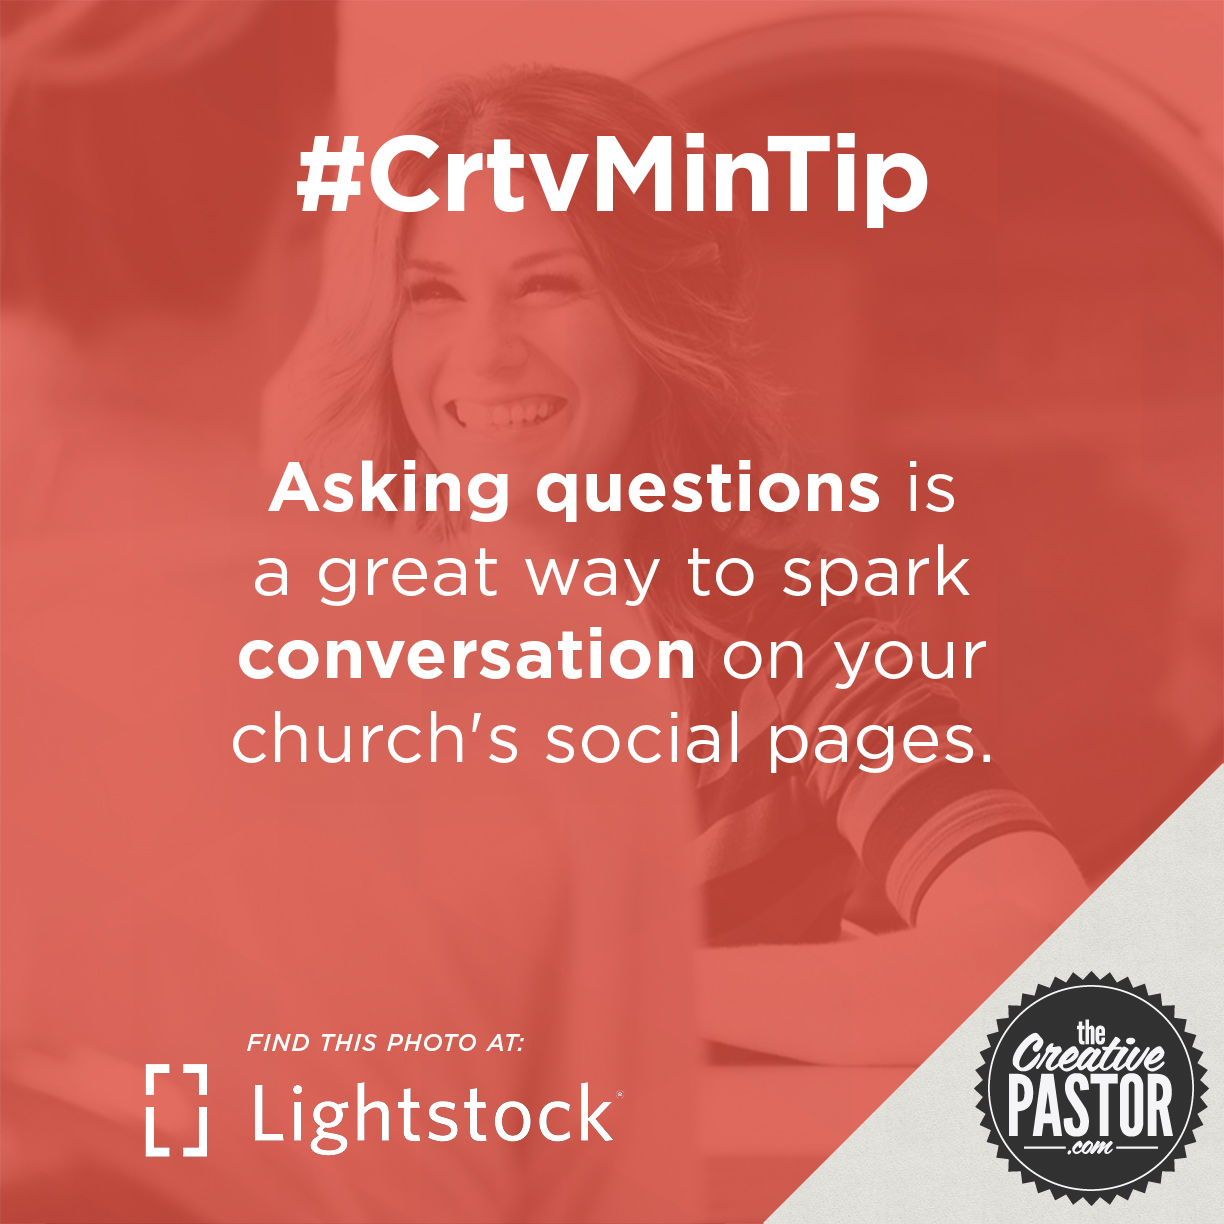 Asking questions is a great way to spark conversation on your church's social pages.